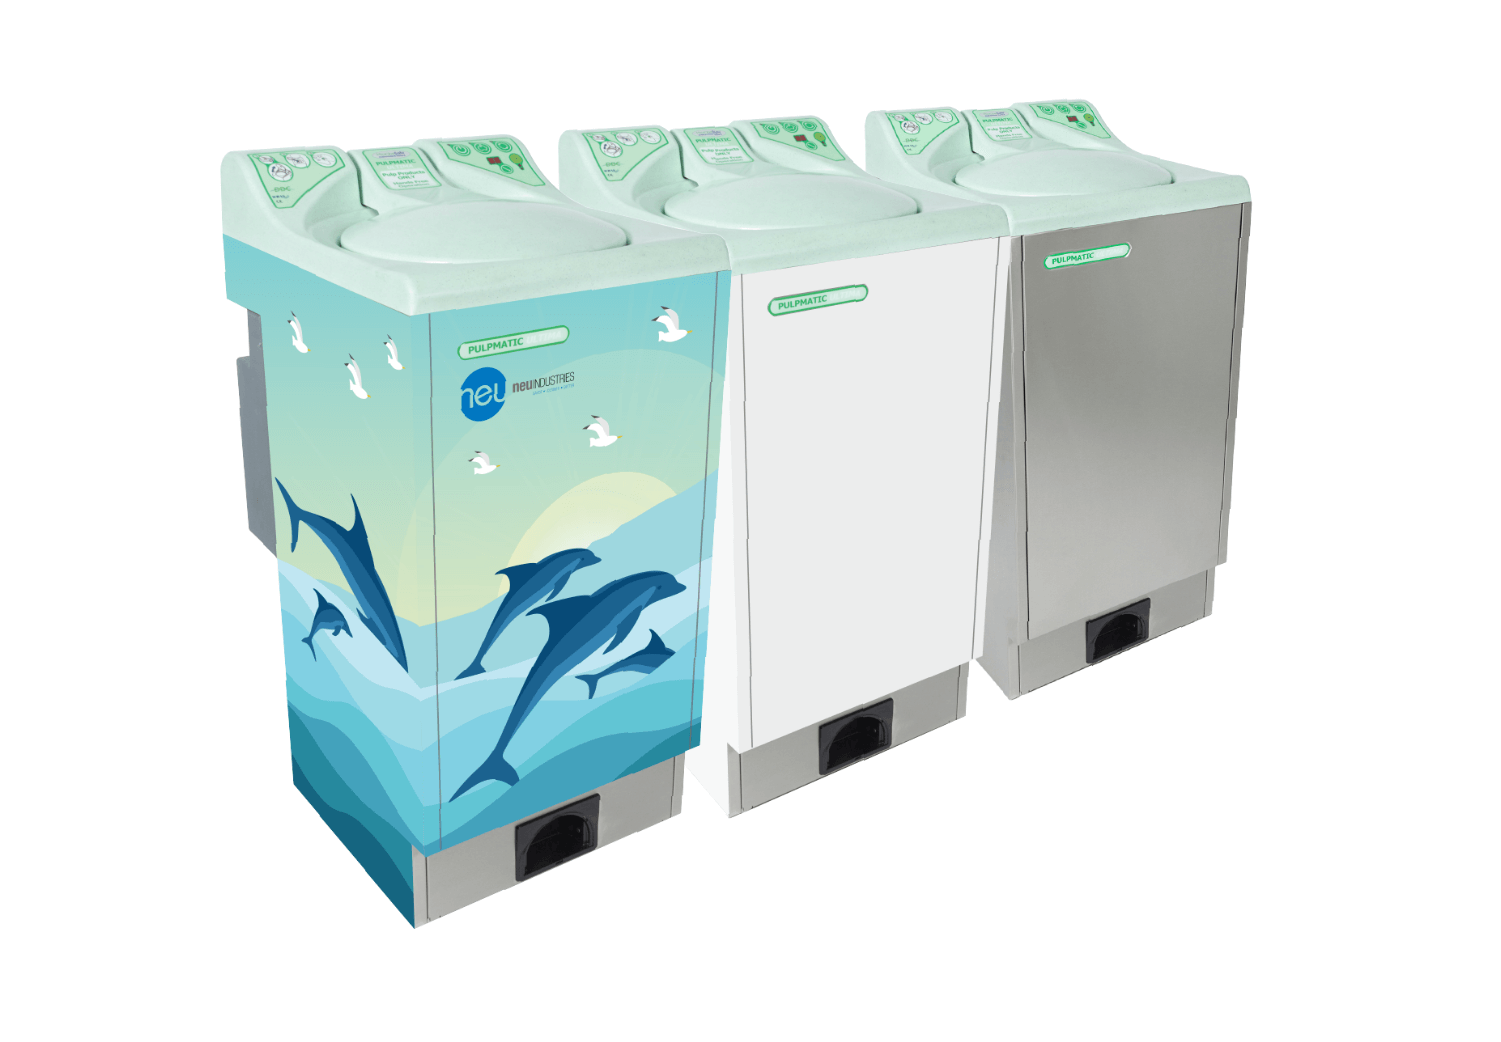 macerator-high-performance-and-technology-pulp-friendly